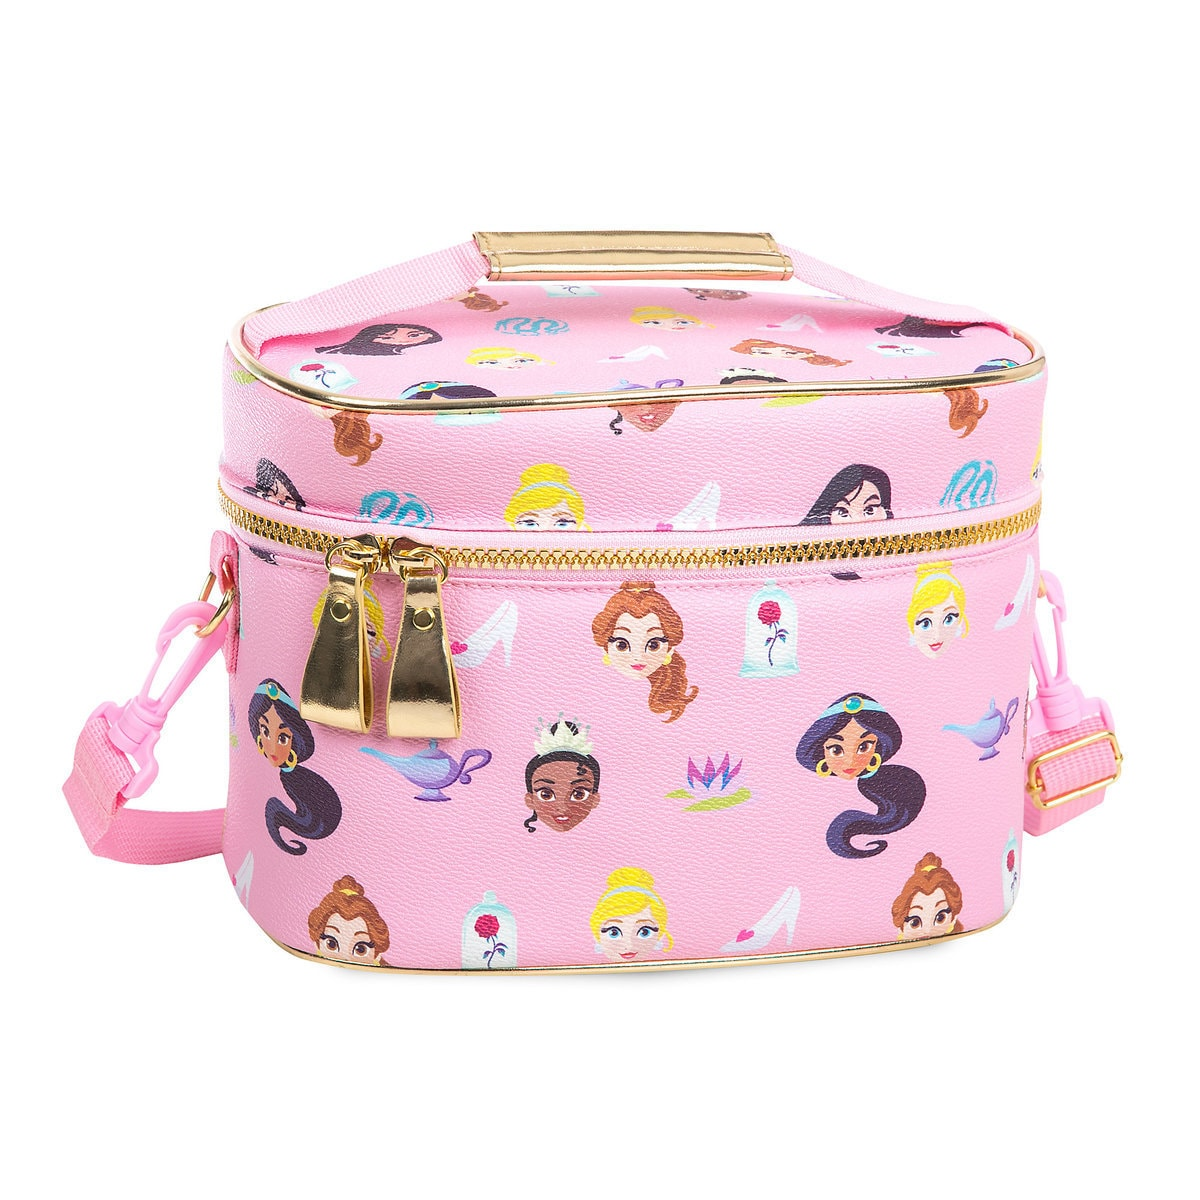 06198091f50 Product Image of Disney Princess Lunch Box   1